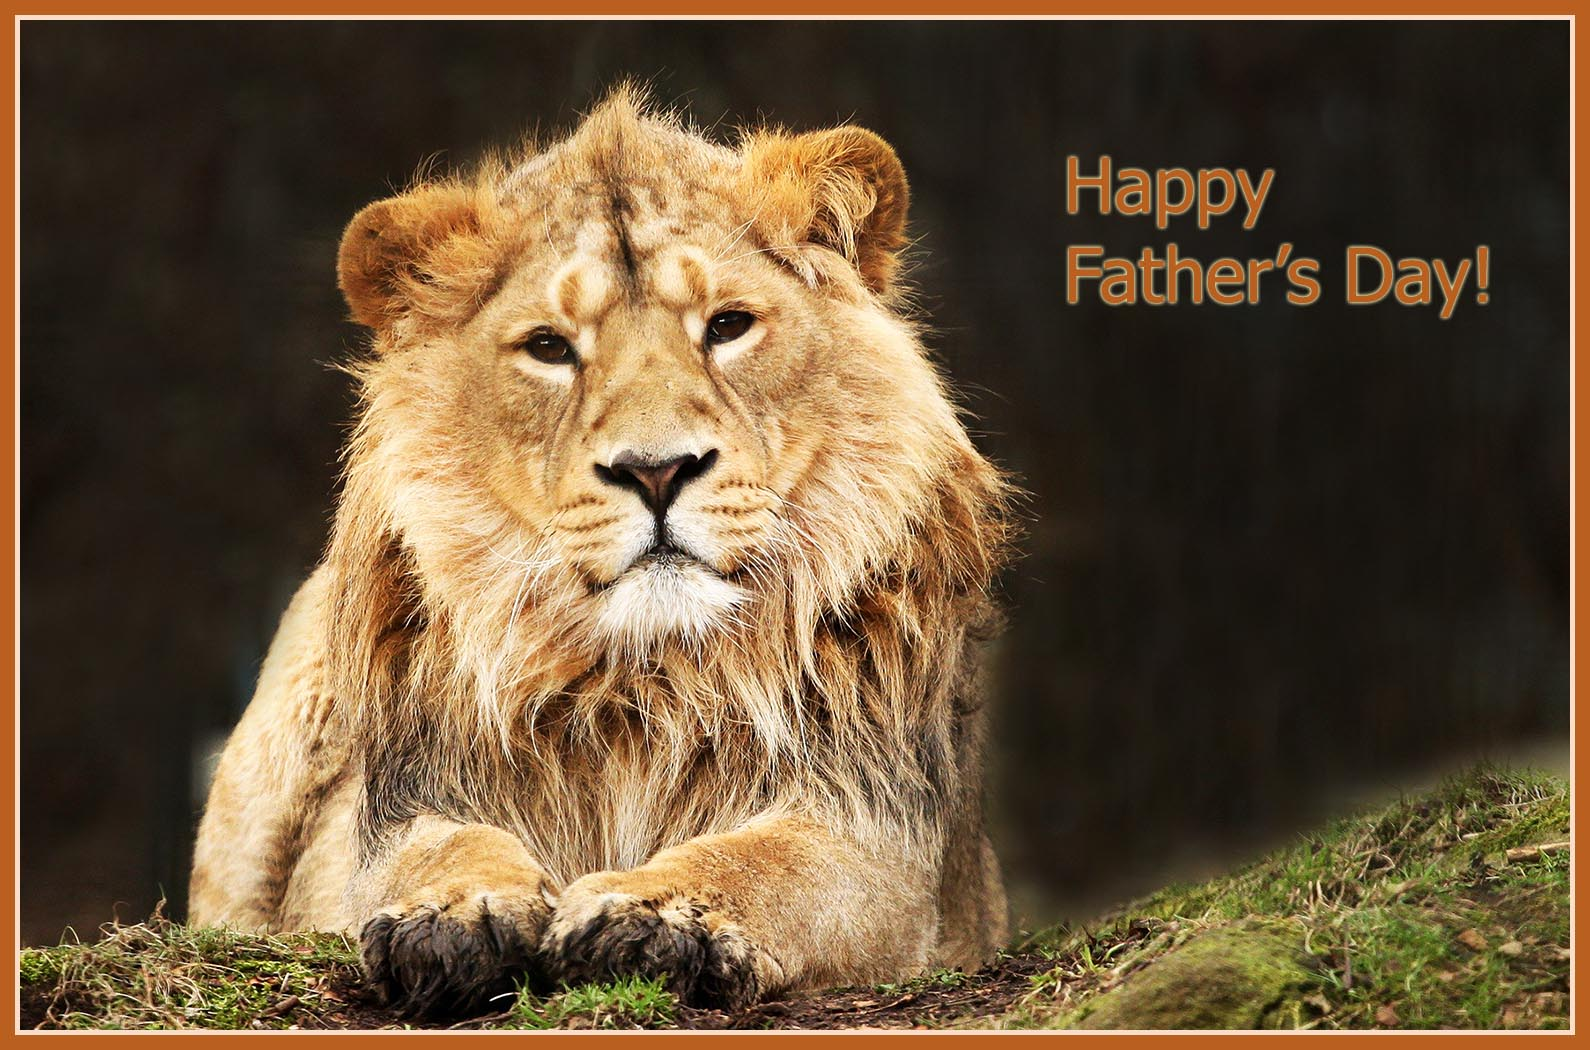 happy father's day card with lion